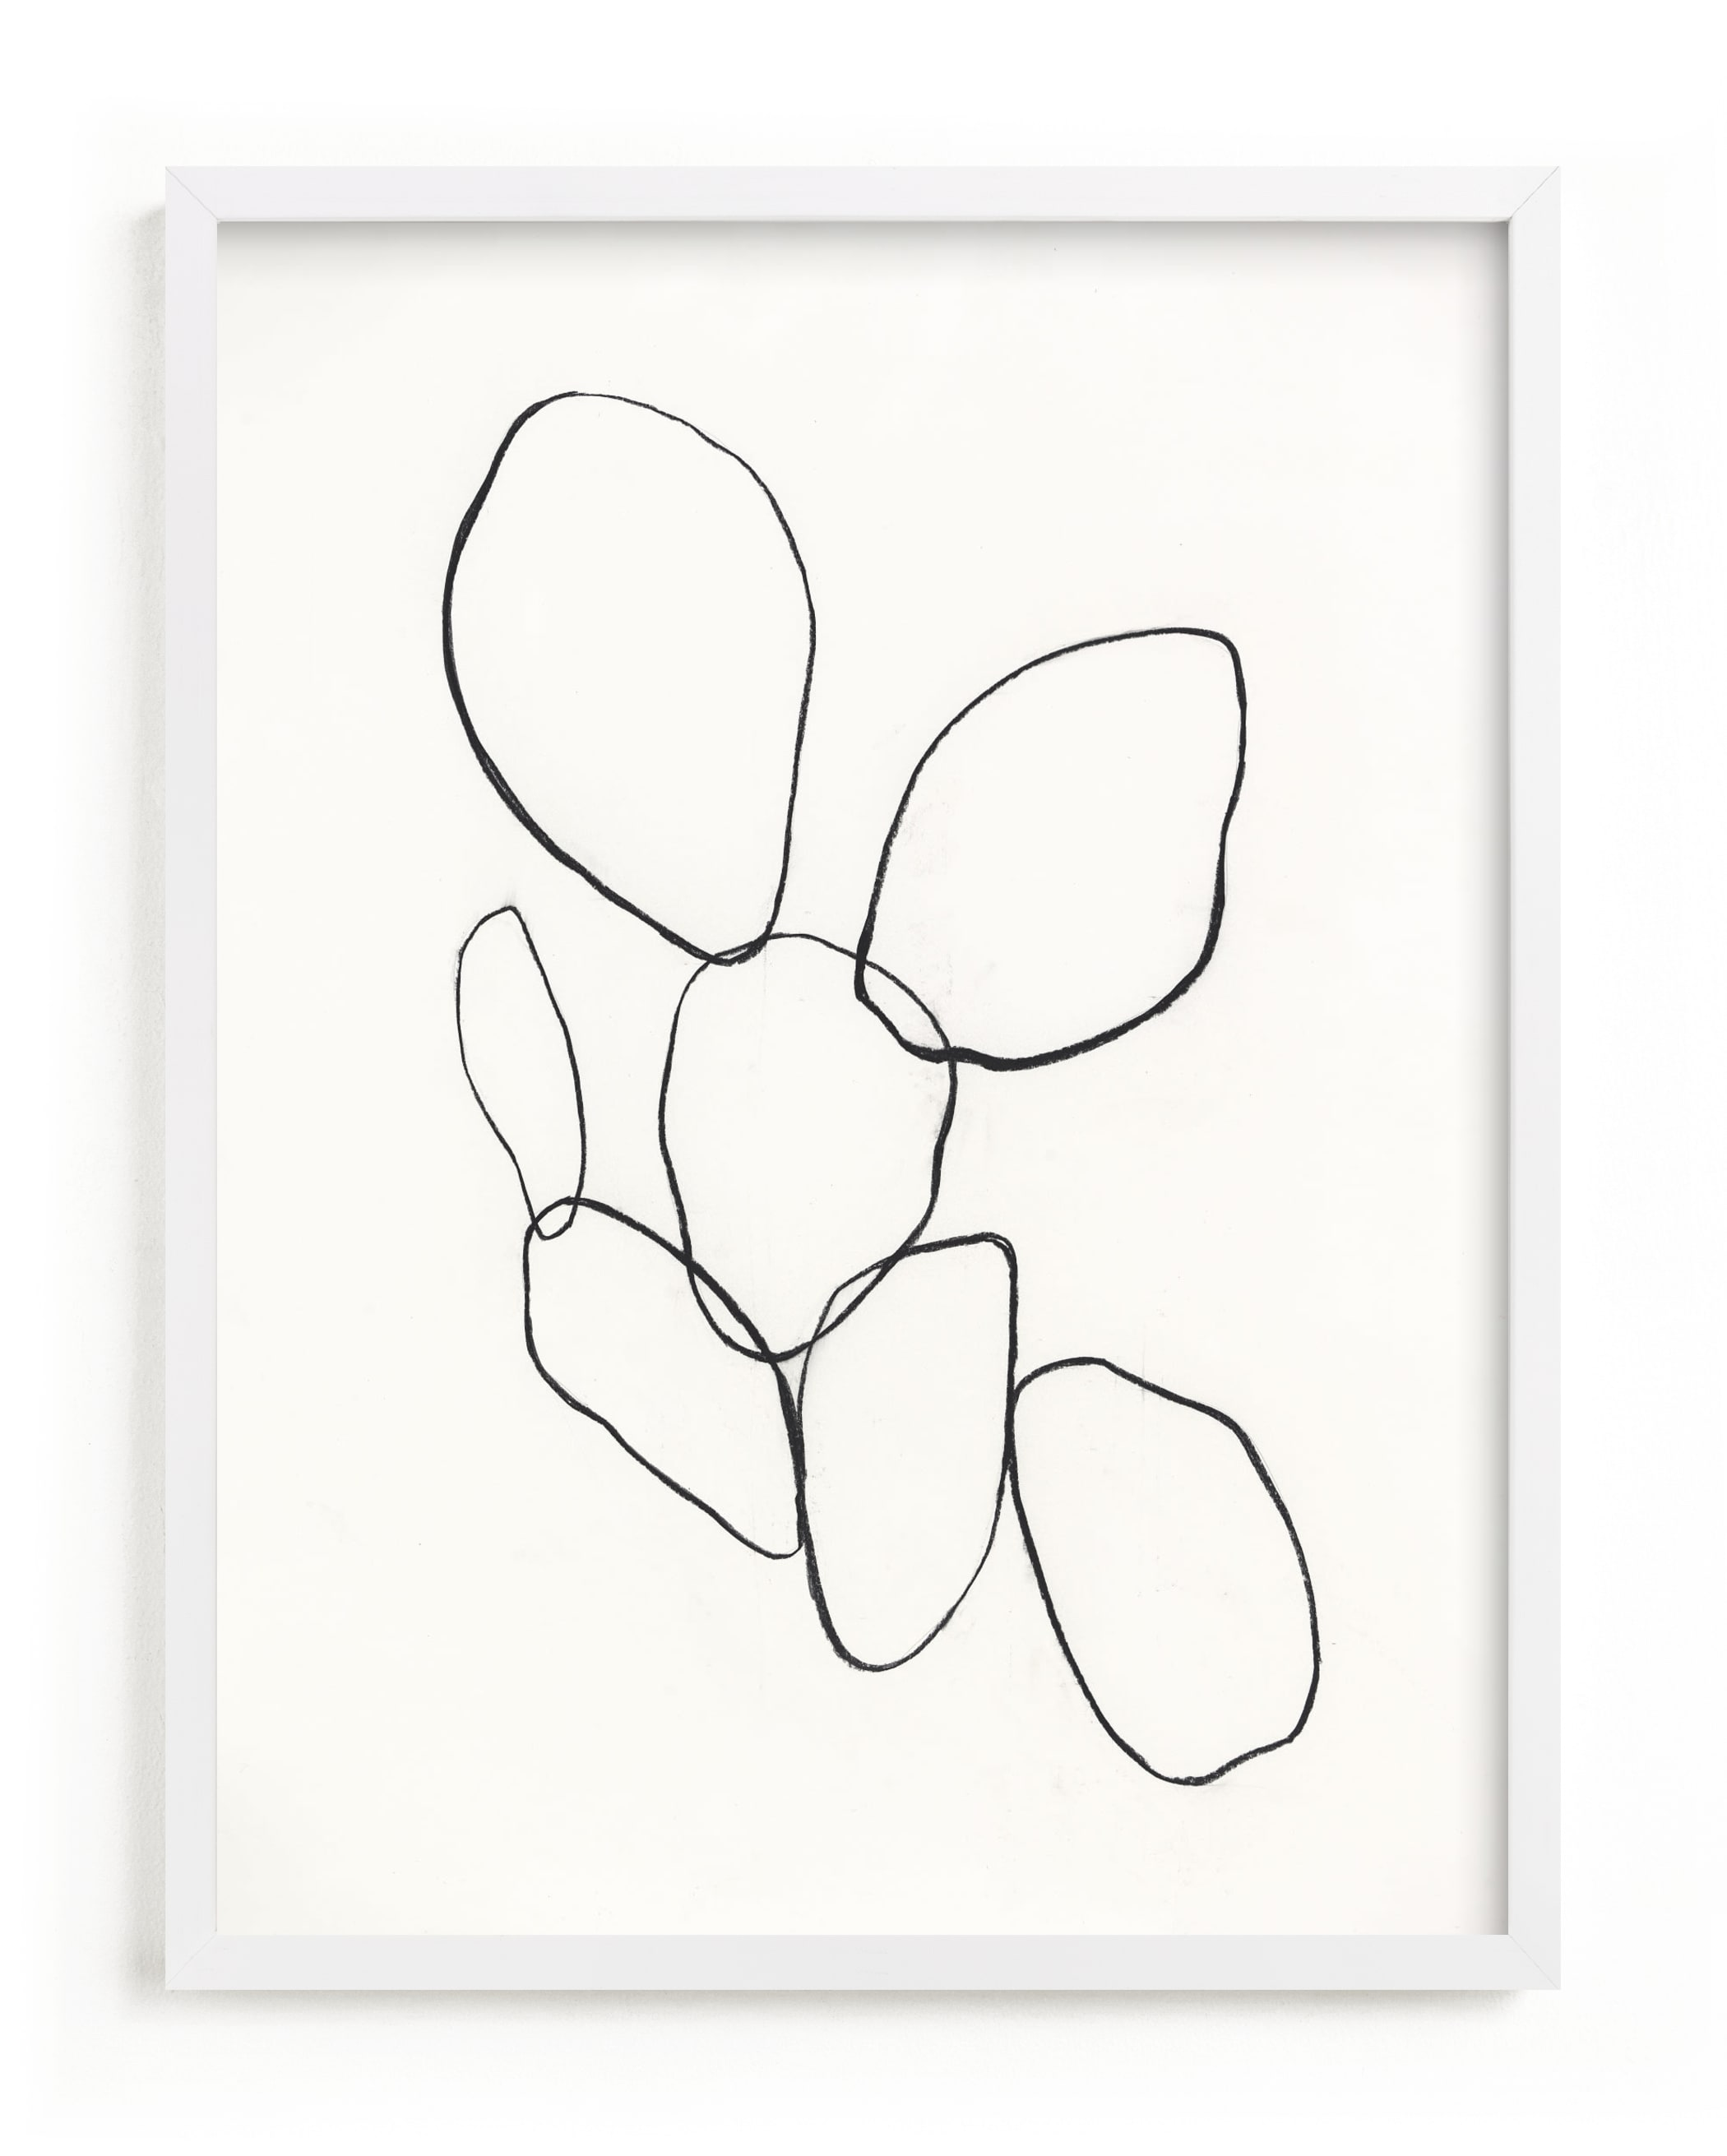 This is a ivory art by Amanda Phelps called Cactus Line Drawing.